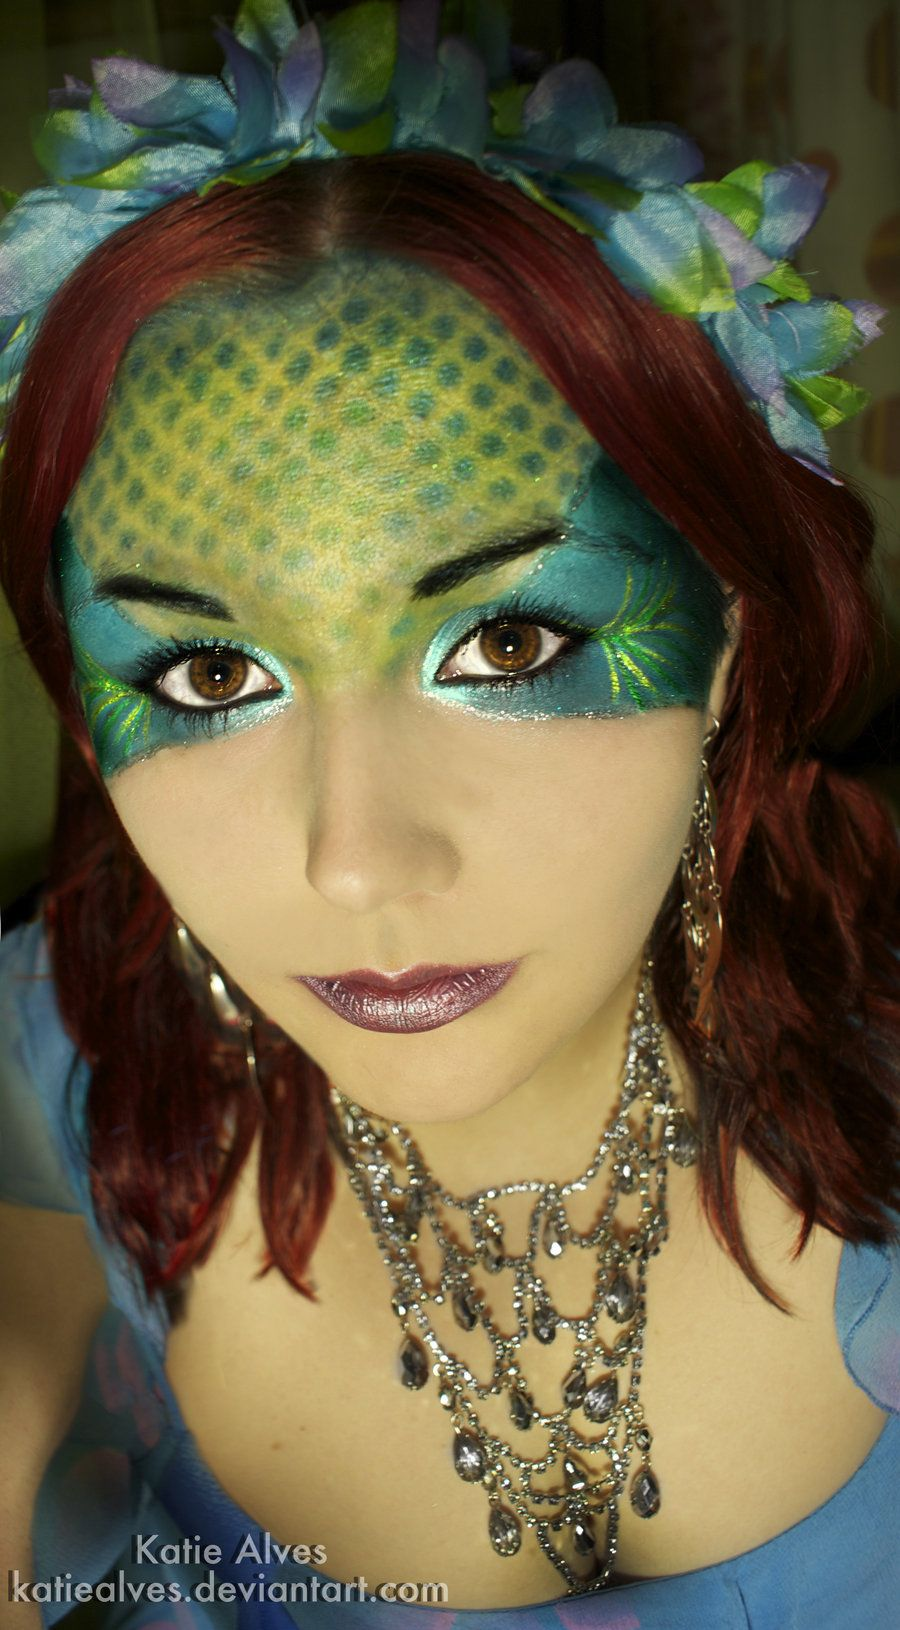 Scaled mermaid makeup - So Many Mermaids | Makeup | Pinterest ...